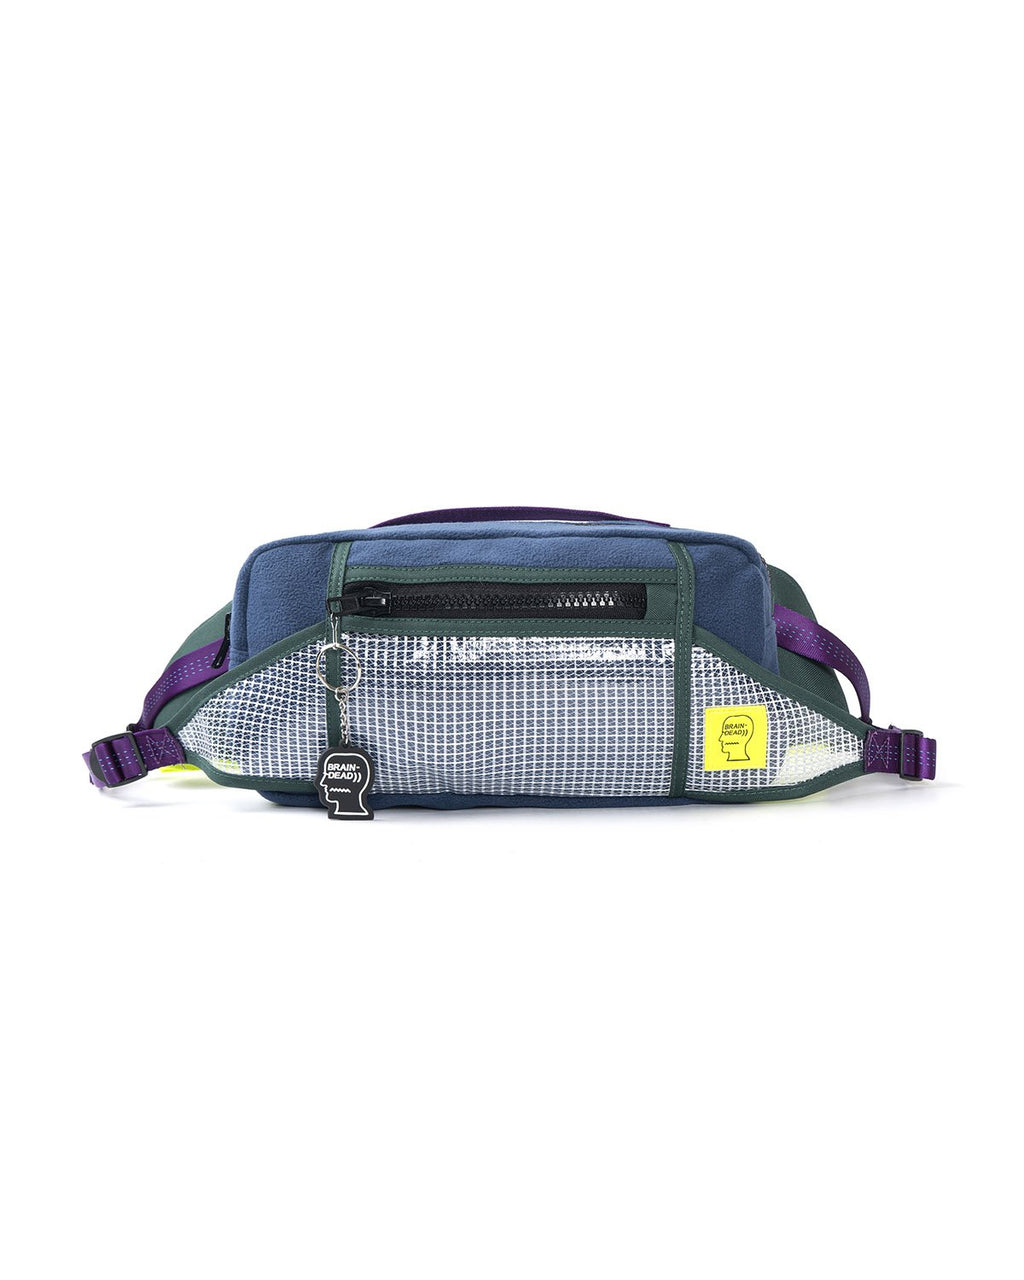 RUSH HOUR FANNY PACK - BLUE/FOREST GREEN